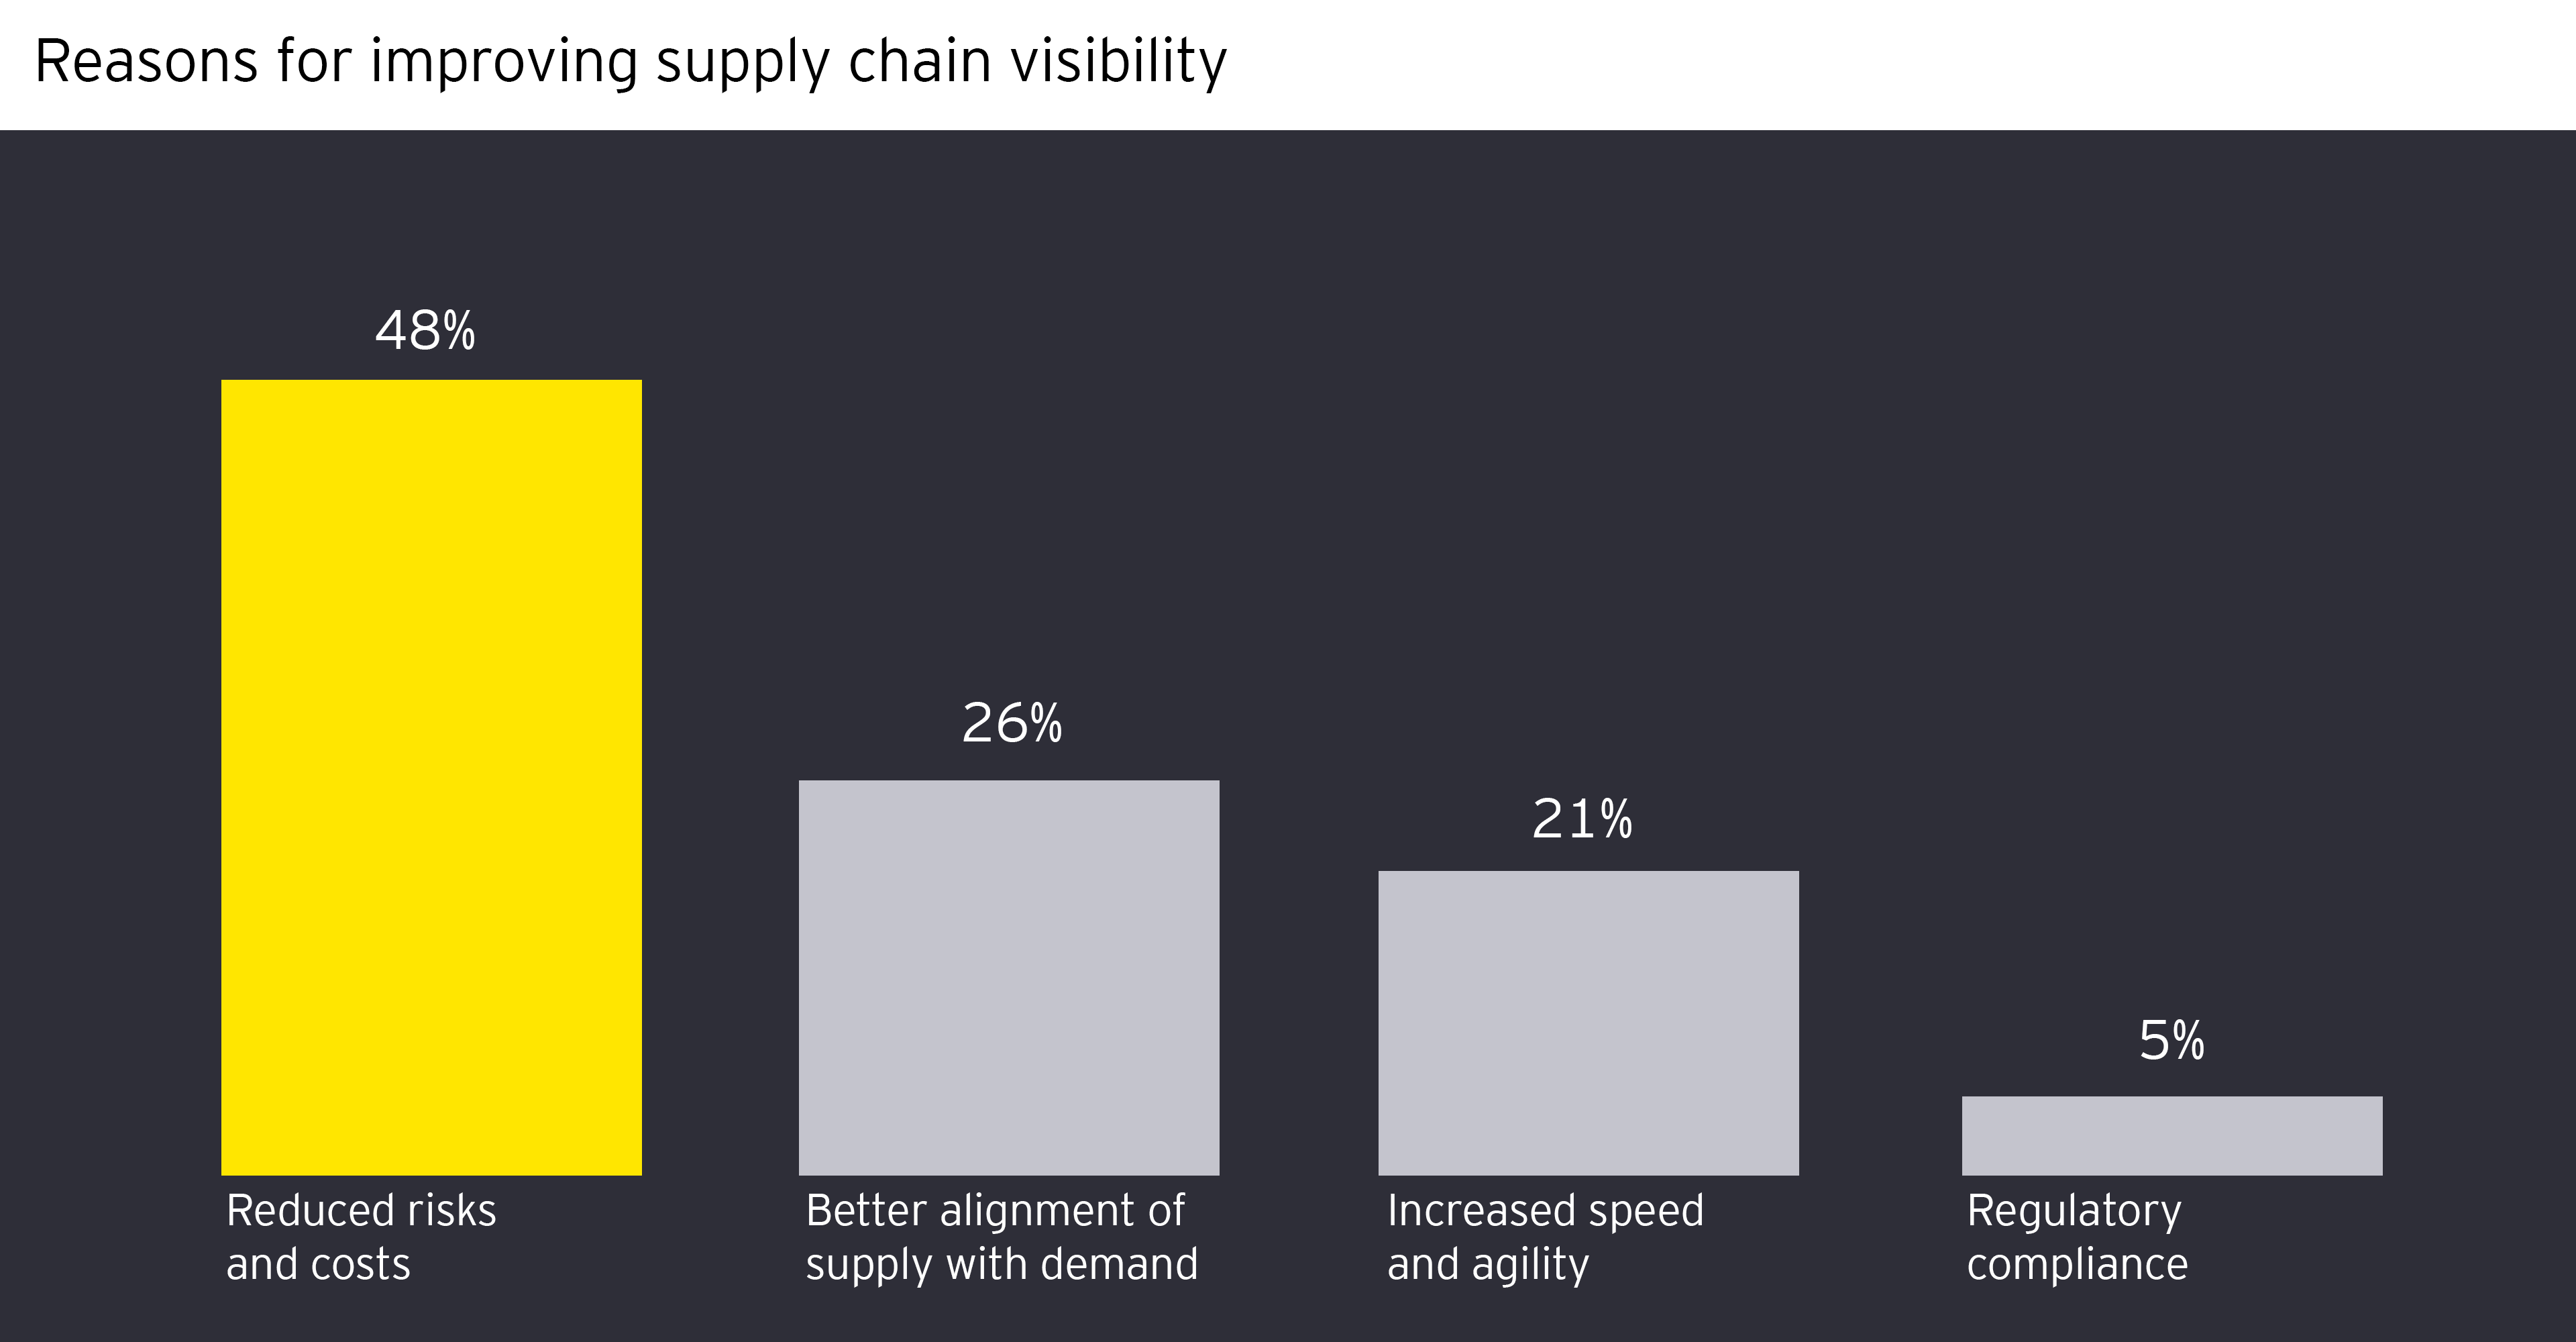 Reasons for improving supply chain visibility